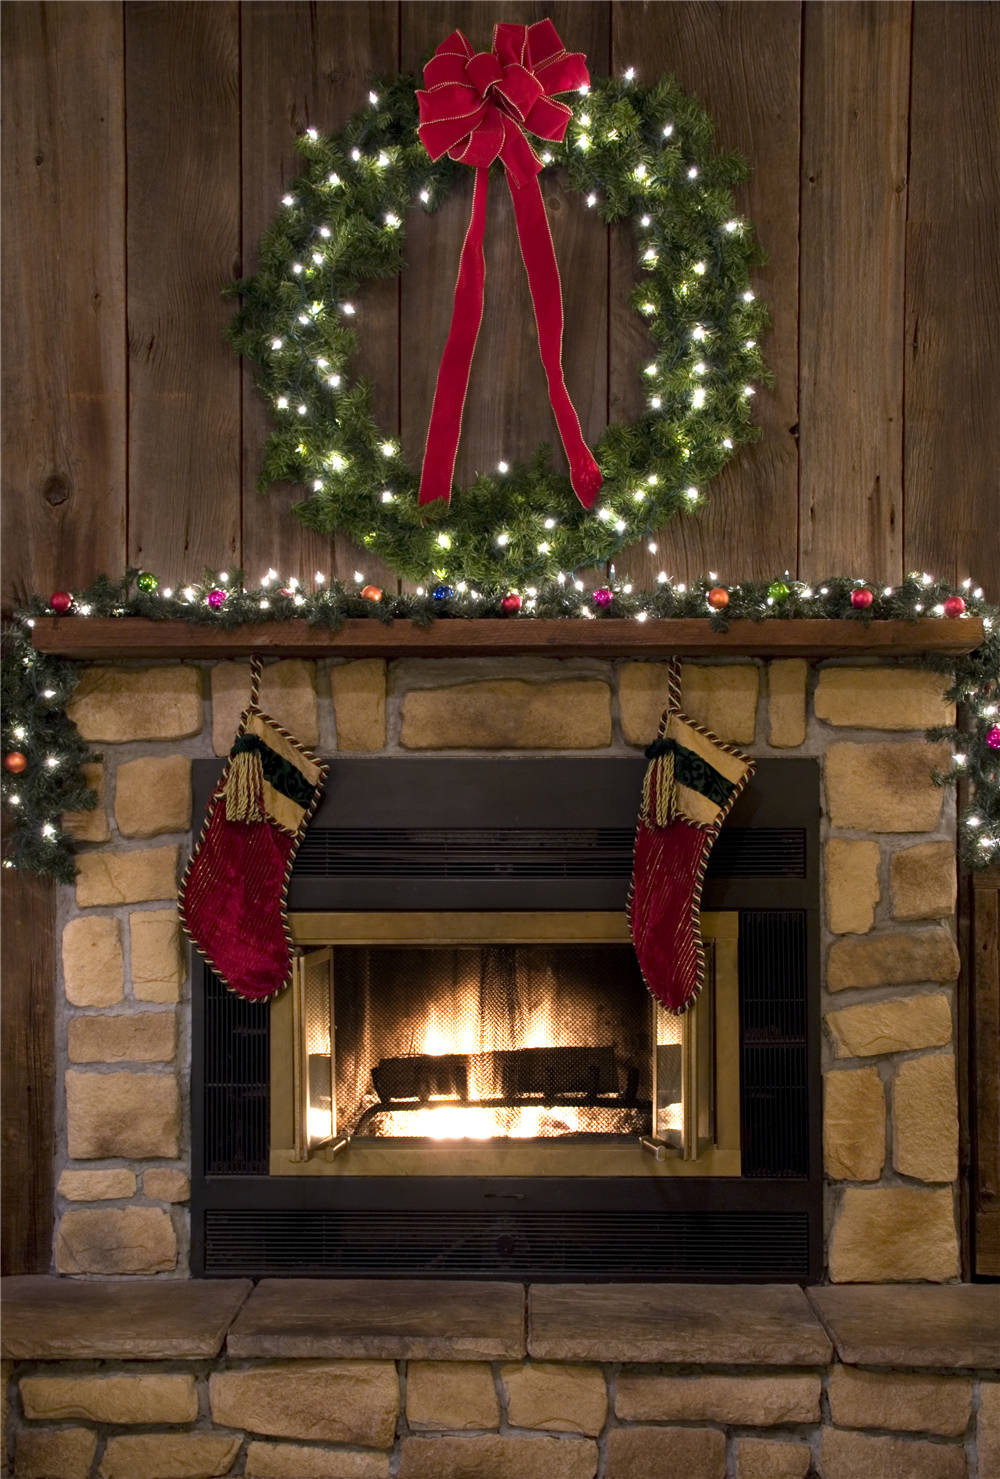 KIDNIU Vinyl Fireplace Photography Backdrops Christmas Socks Photo Studio Background Children 5x7ft or 3x5ft christmas050 fashion rustic iron bedroom bedside wall light fixture home deco living room e27 wall lamp european vintage glass wall sconces